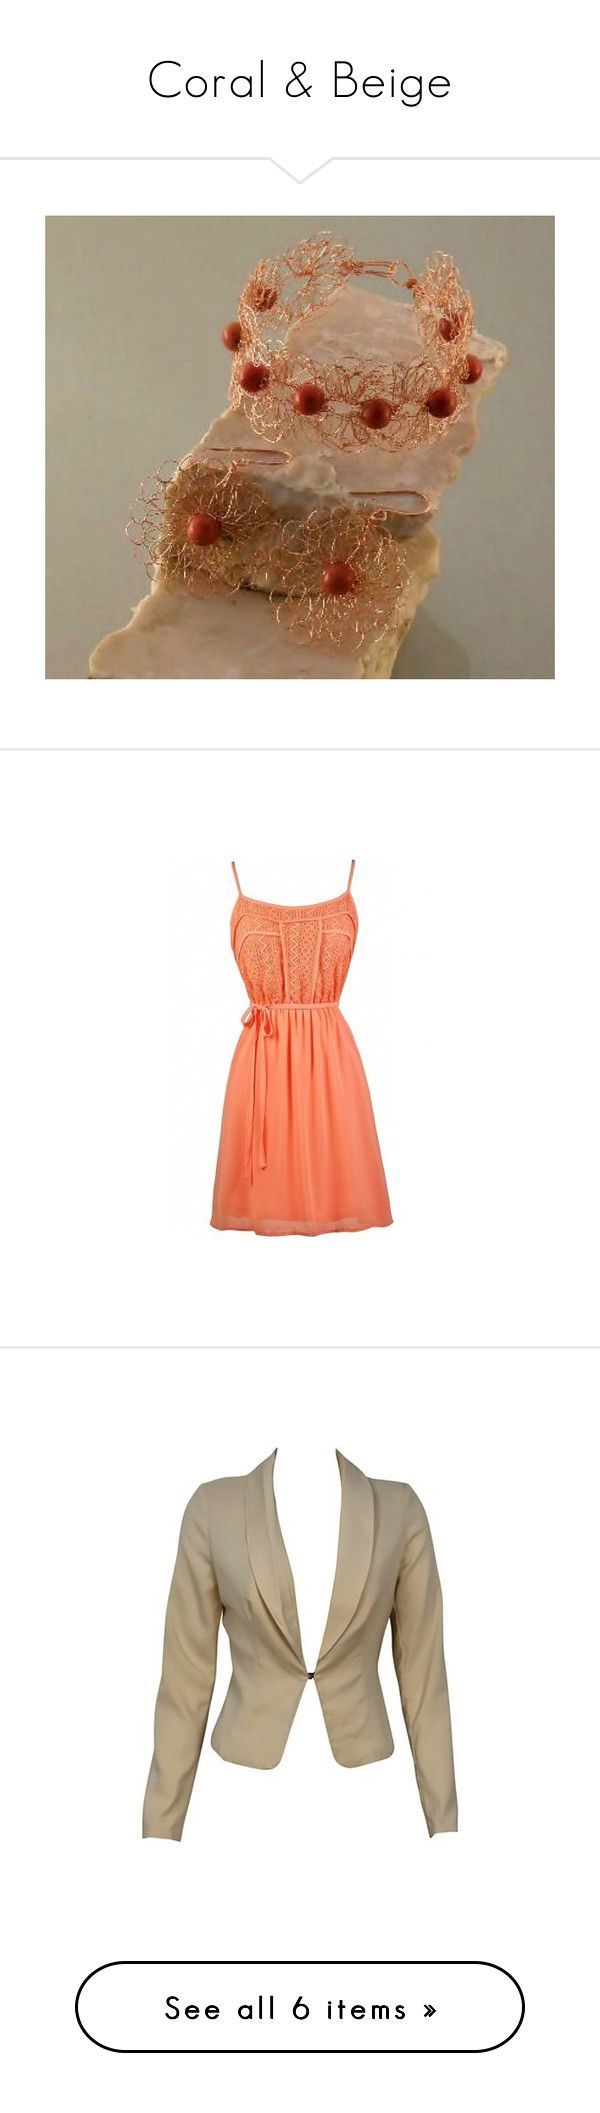 """Coral & Beige"" by styledonna on Polyvore featuring dresses, lace print dress, summer dresses, summer cocktail dresses, coral dress, orange dress, outerwear, jackets, blazers i beige"